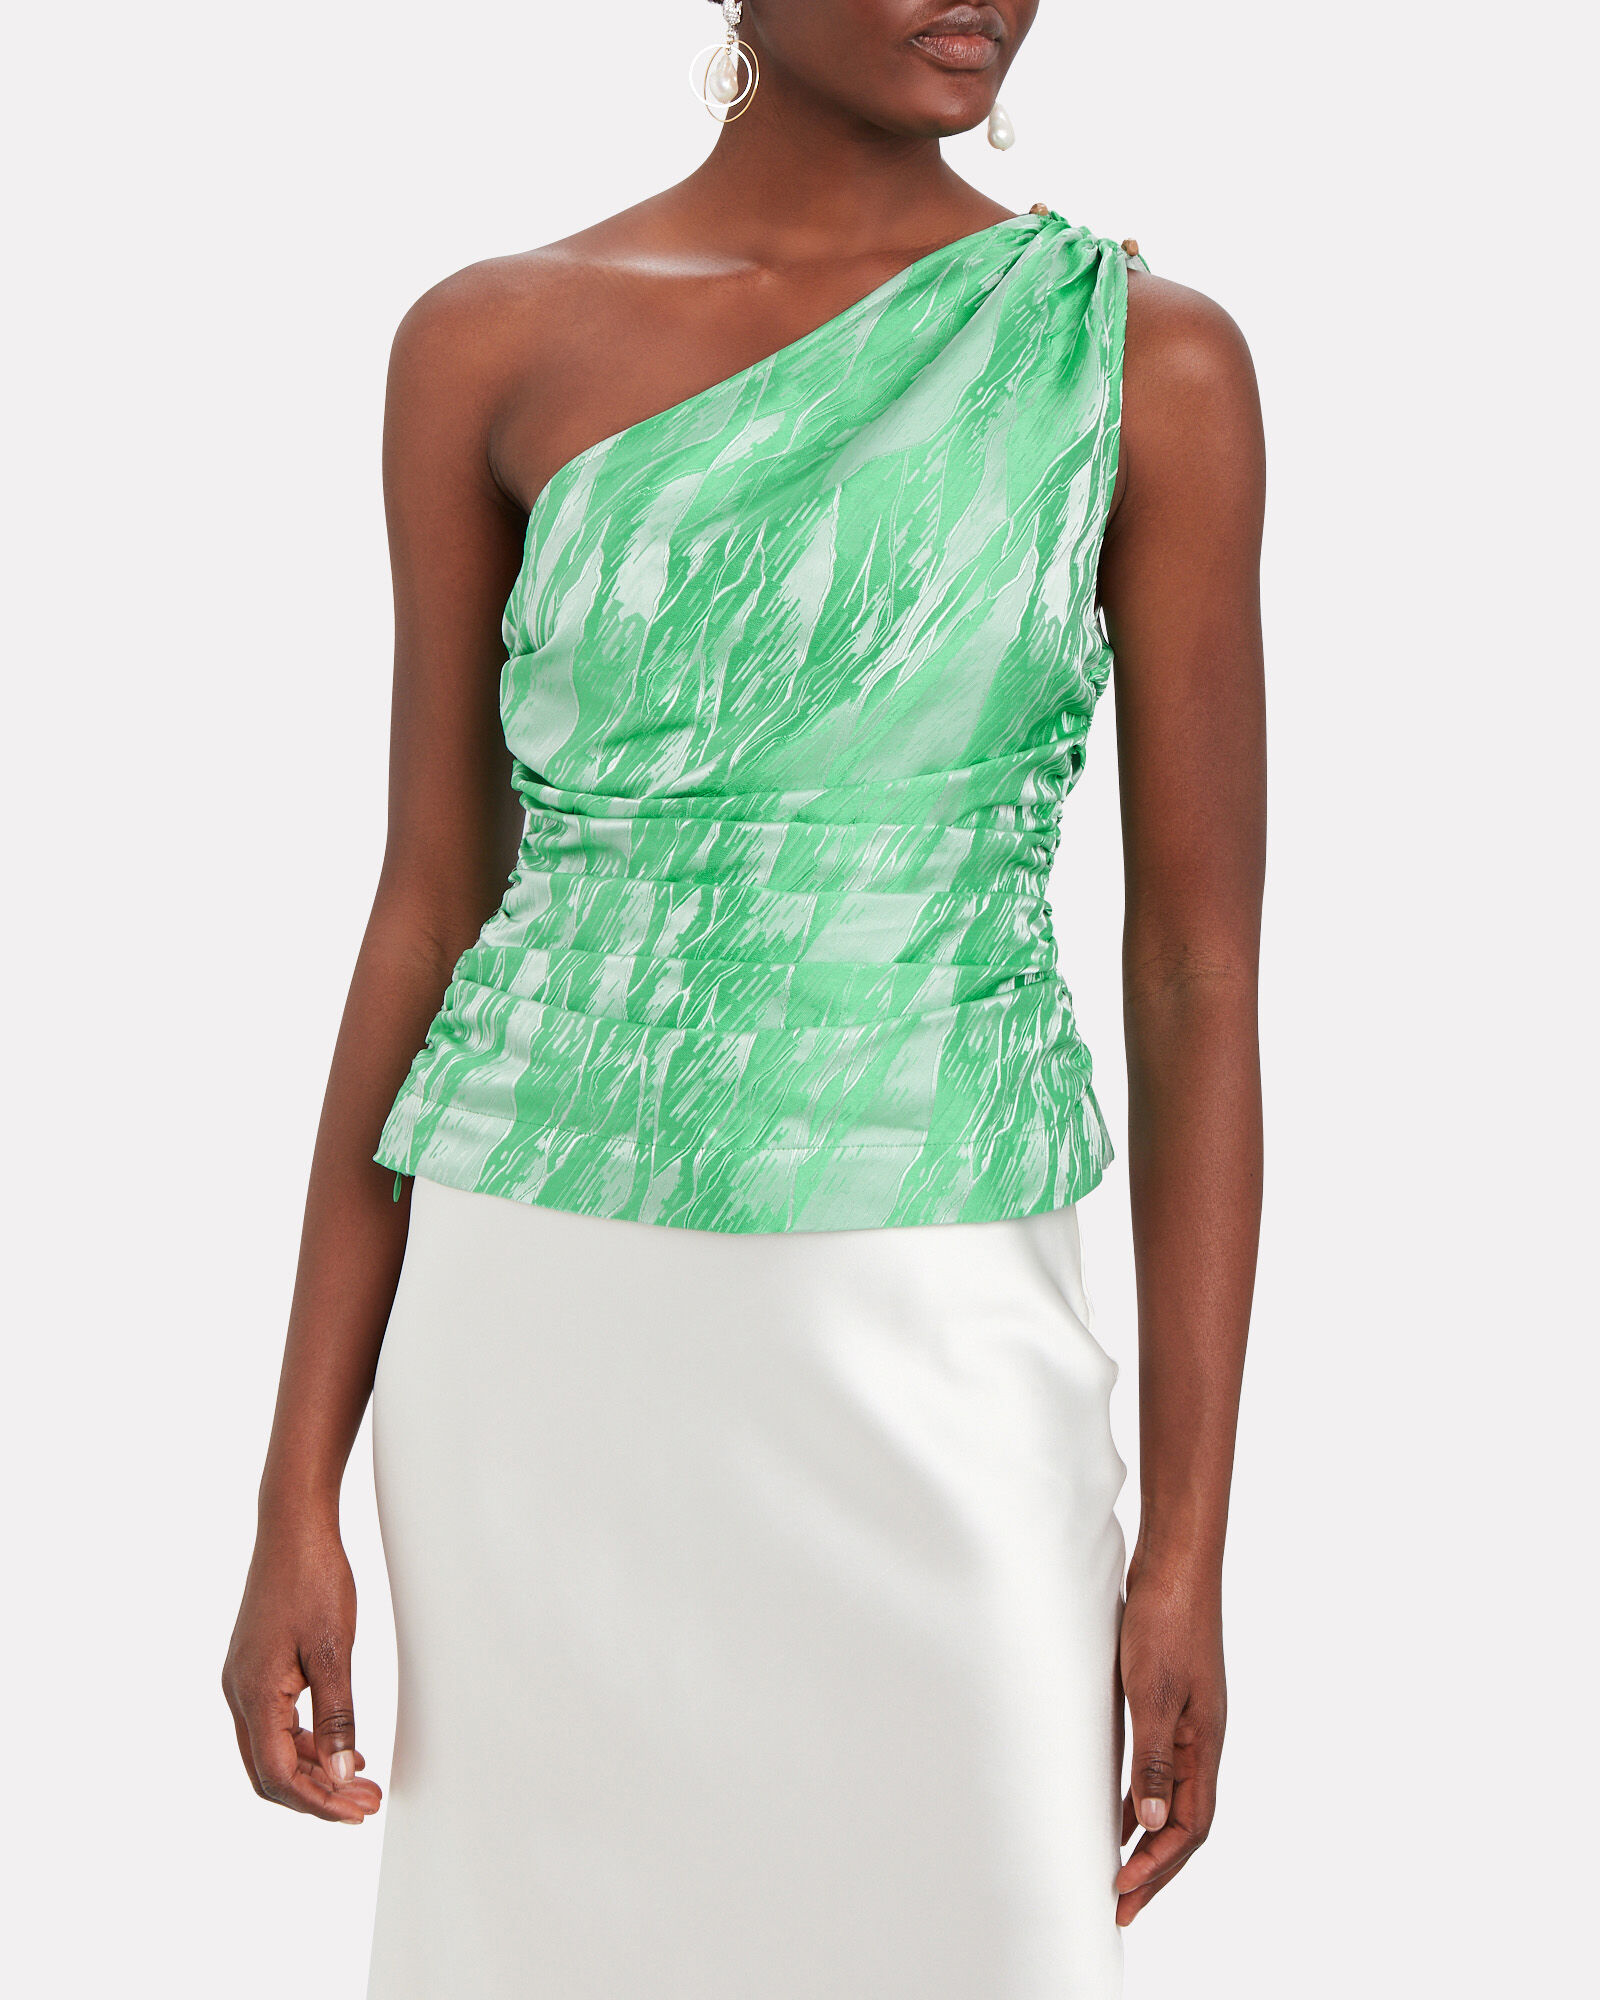 One-Shoulder Jacquard Top, PALE BLUE/SEAFOAM, hi-res